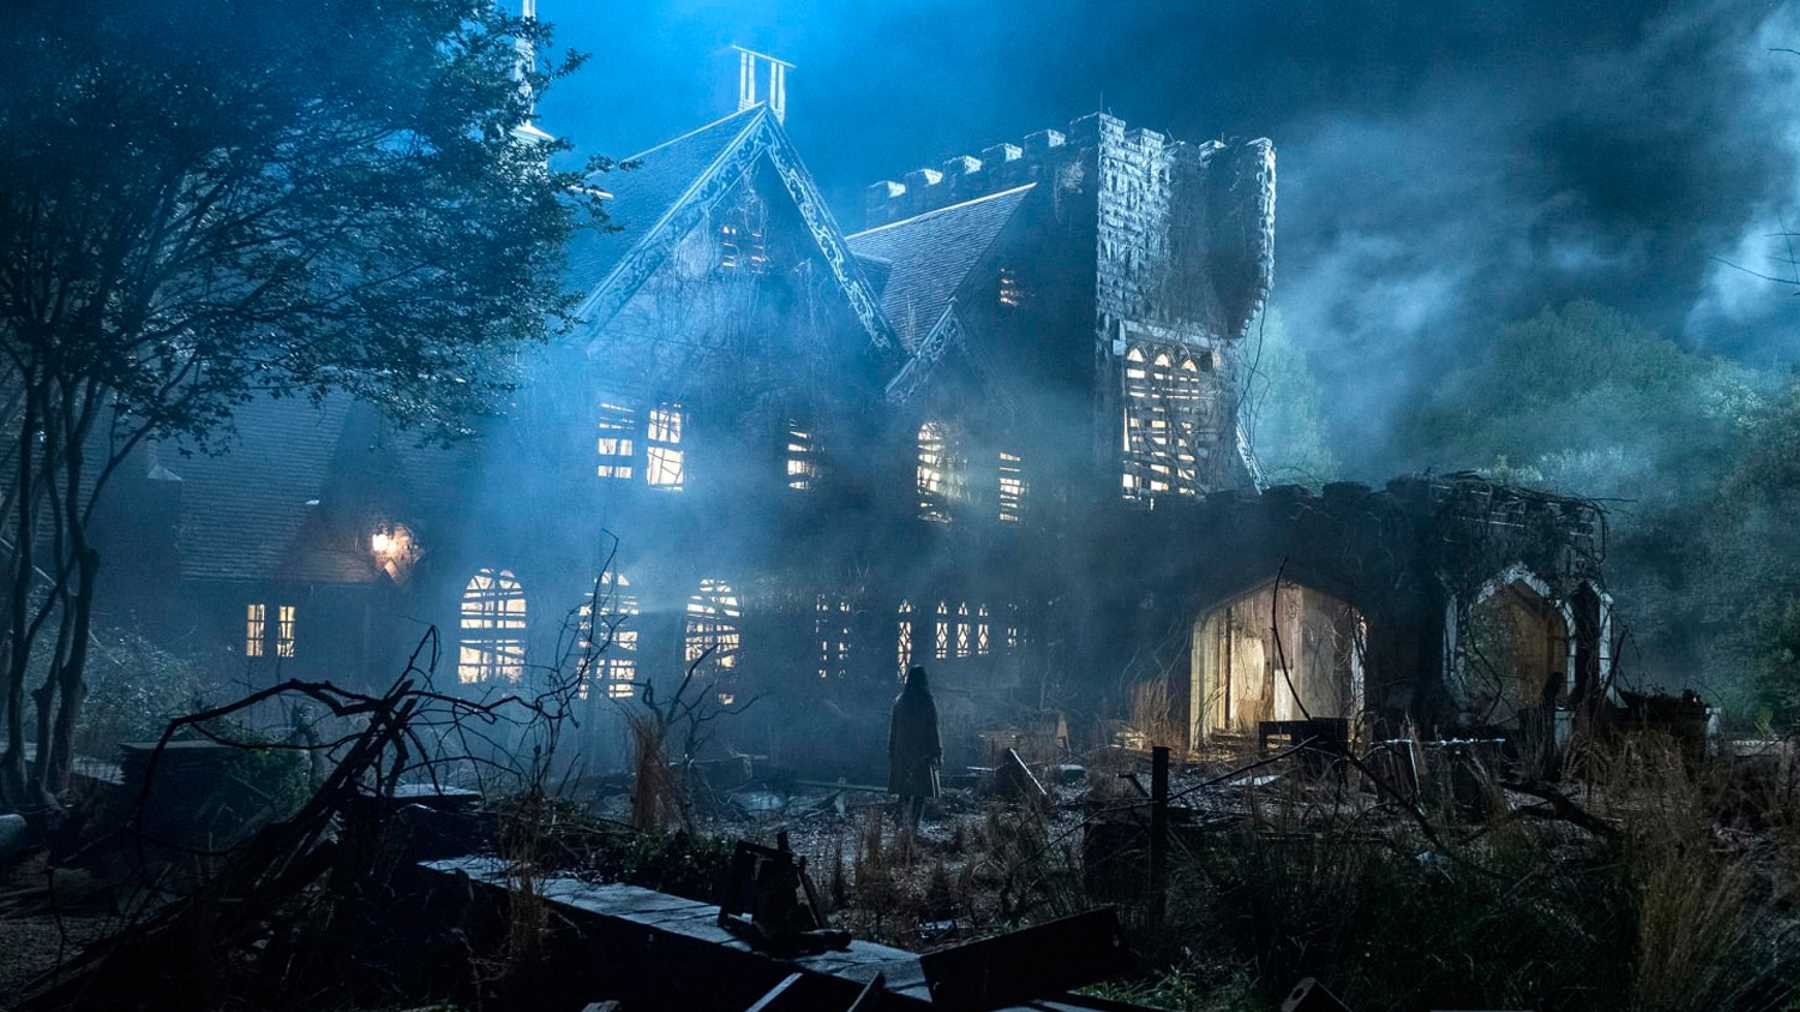 The Haunting Of Bly Manor Netflix S Hill House Sequel Will Adapt Turn Of The Screw Movies Empire